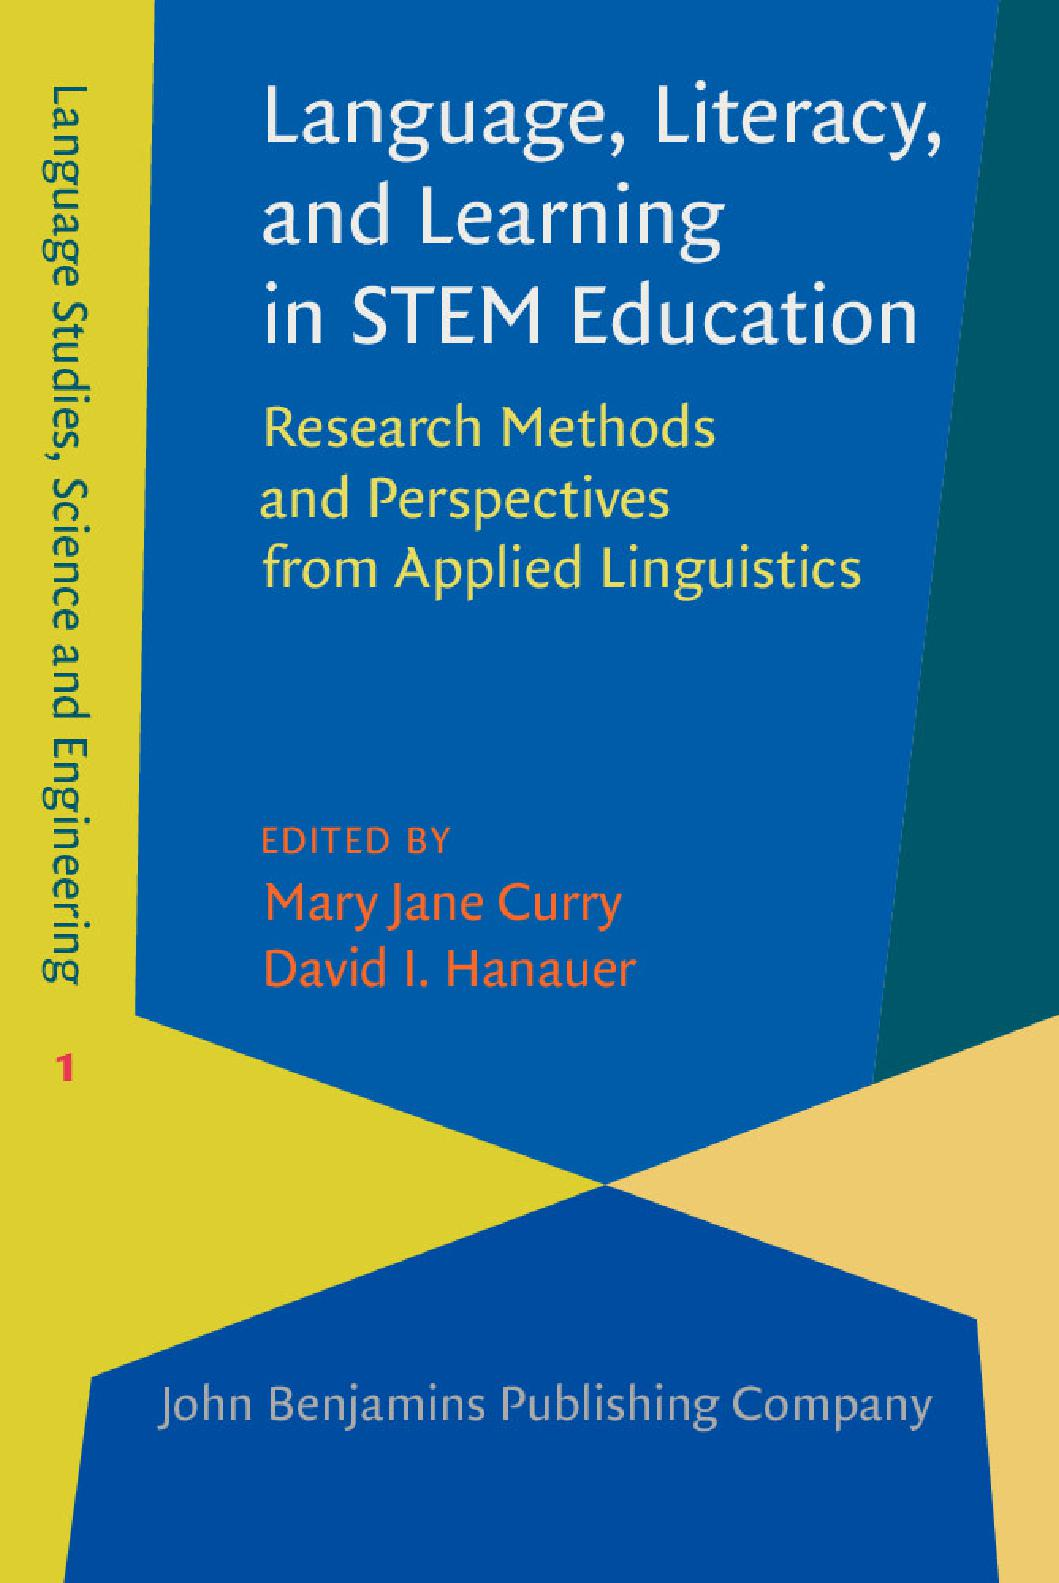 Language, Literacy, and Learning in STEM Education Research Methods and Perspectives from Applied Linguistics